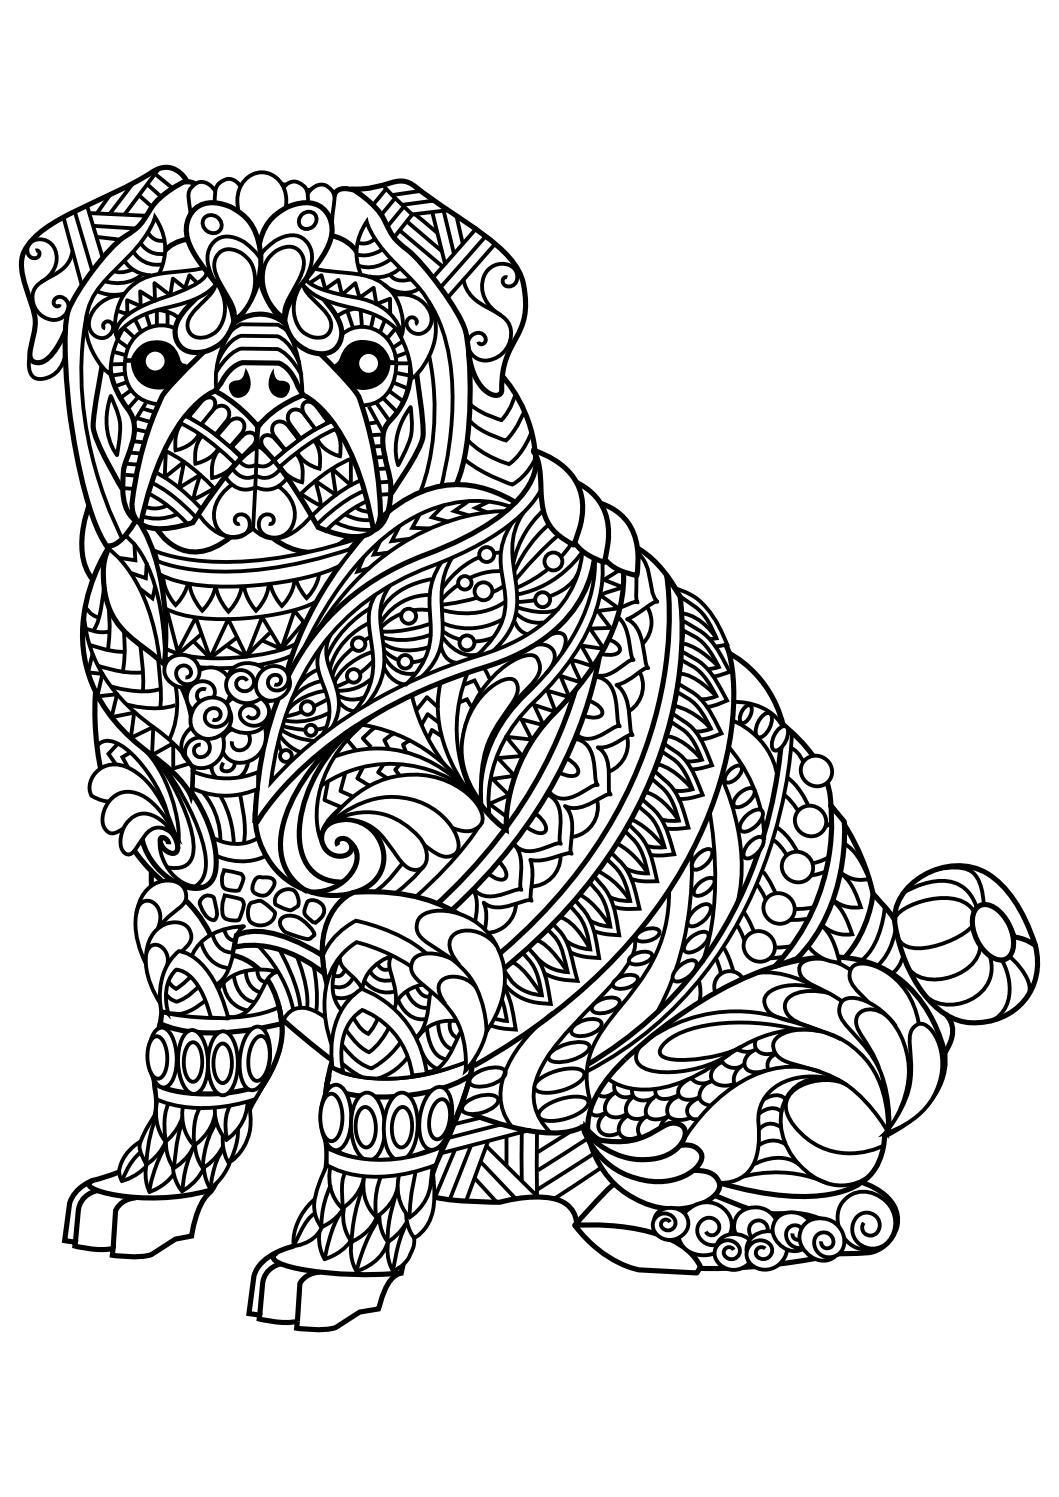 Animal Coloring Pages Pdf  to Print 8s - Free Download